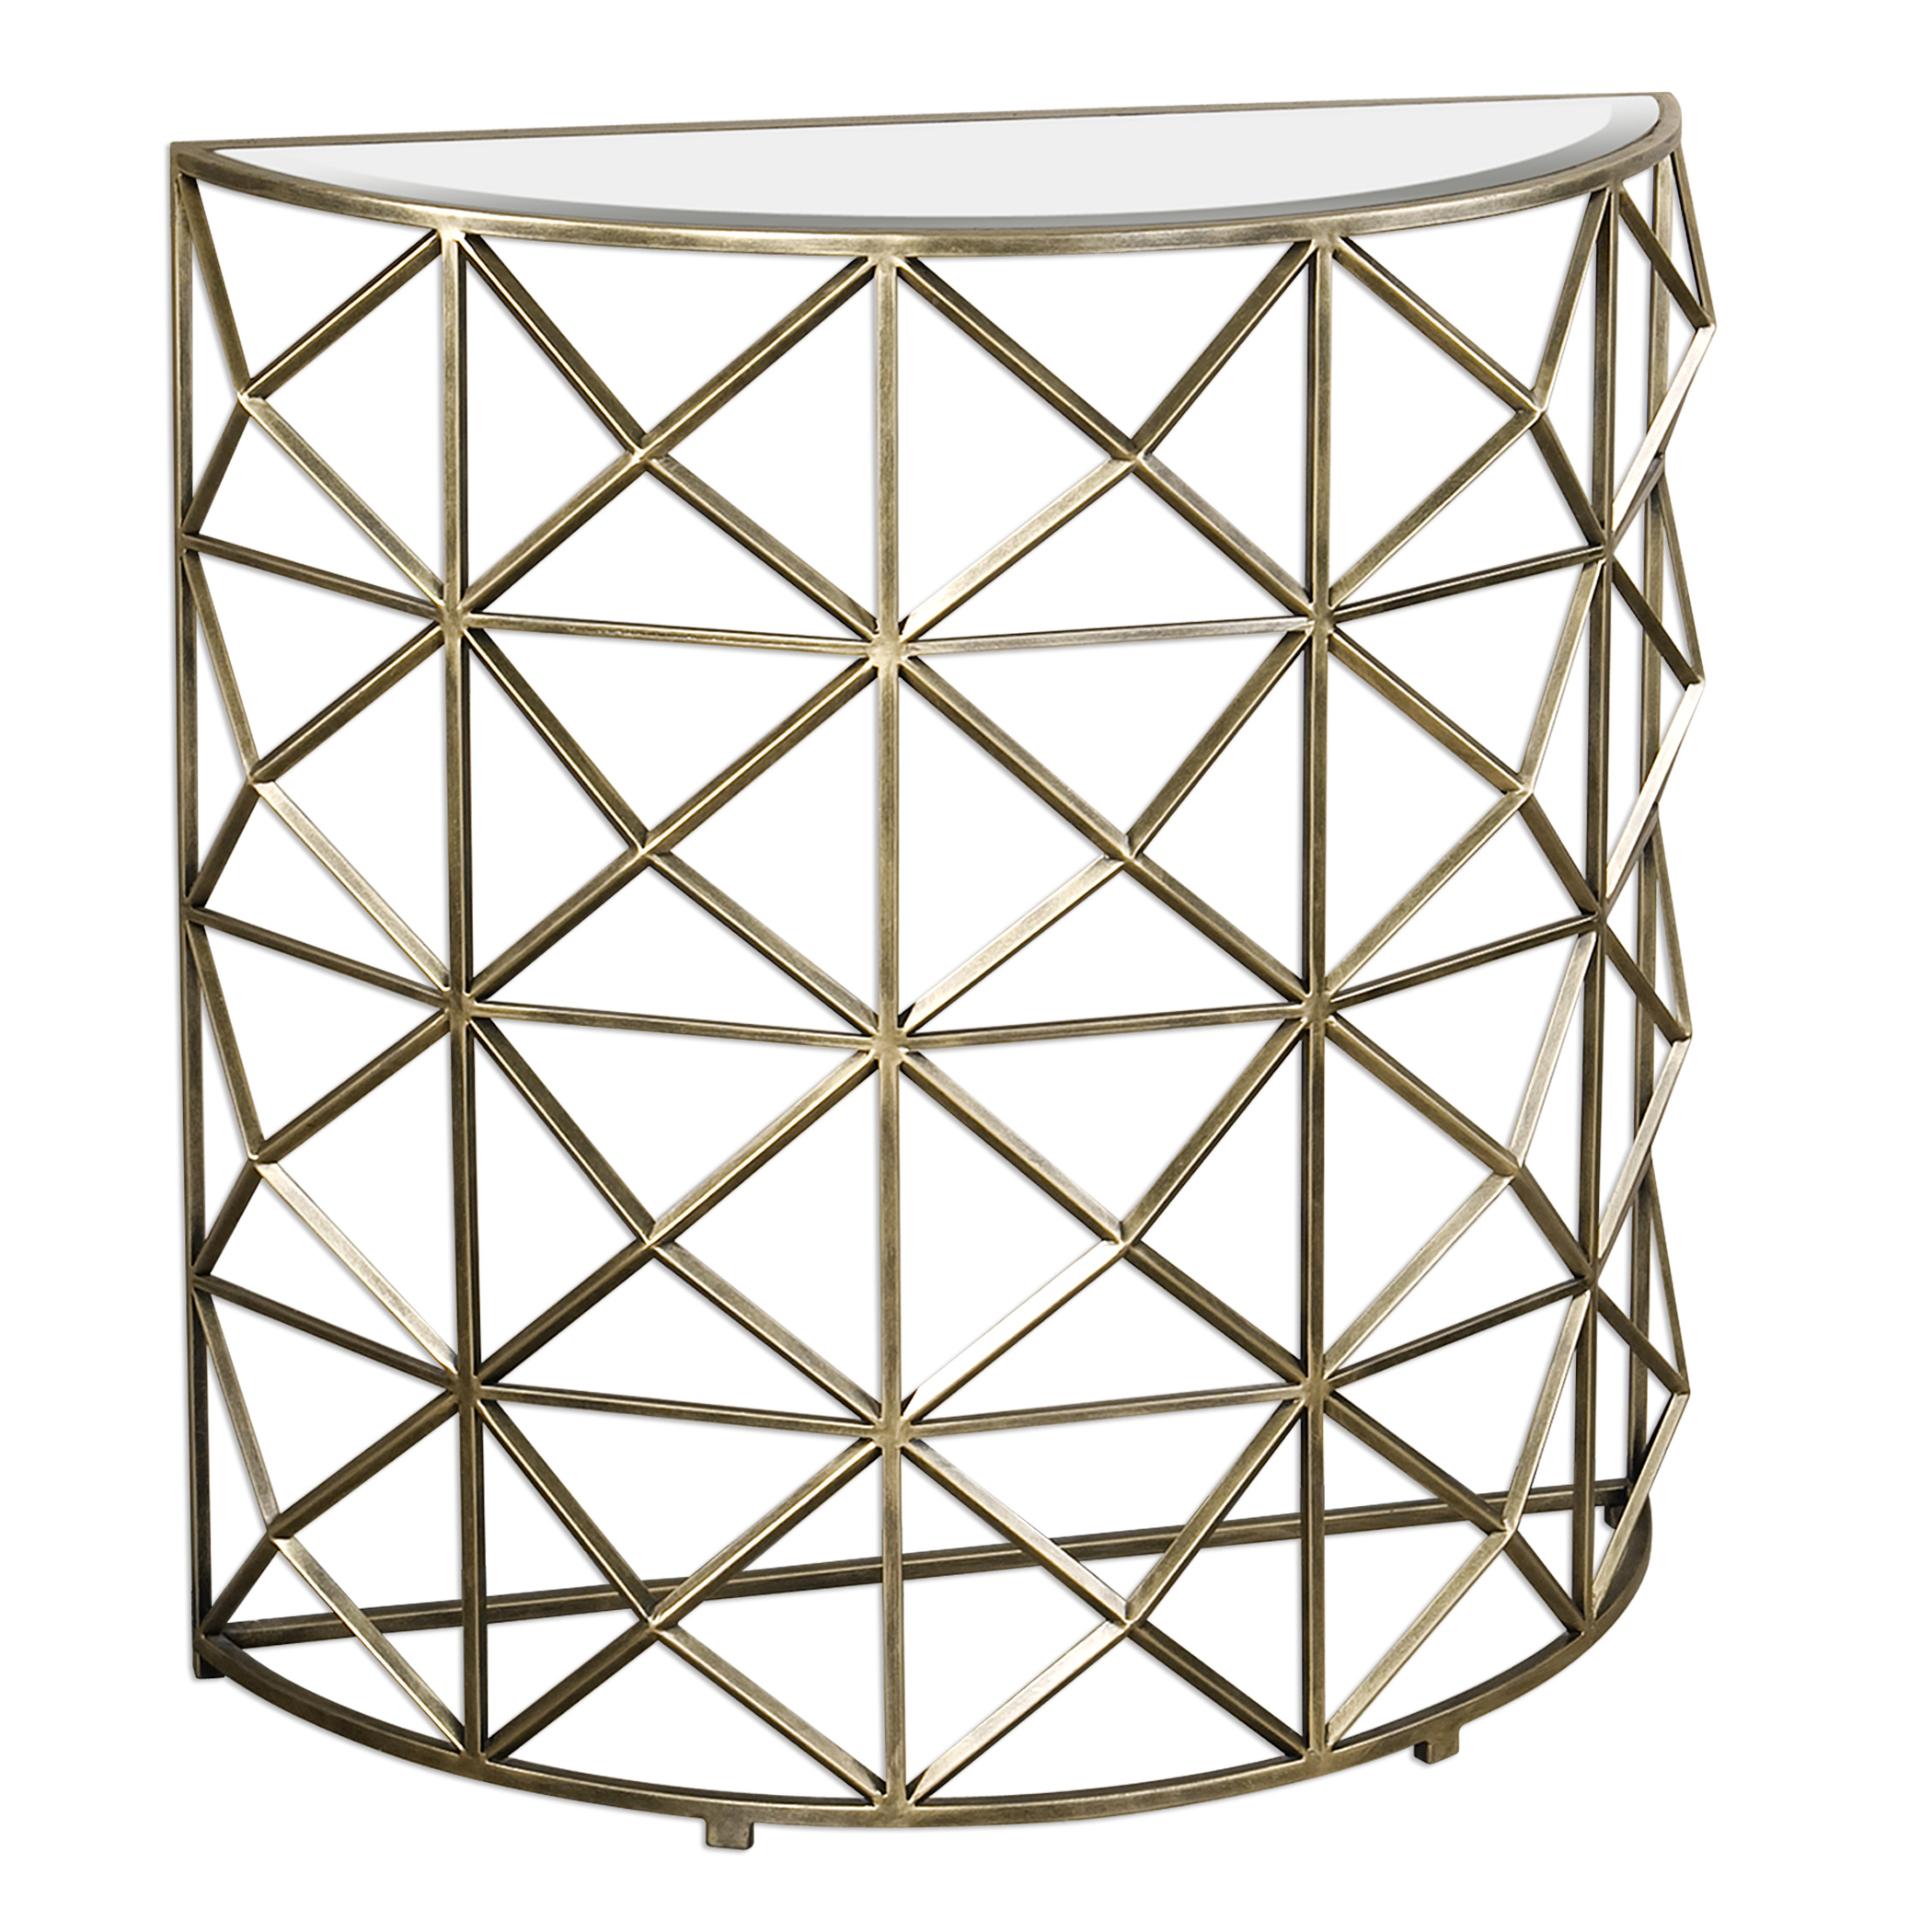 Uttermost Accent Furniture Yulia Gold Console Table - Item Number: 24591